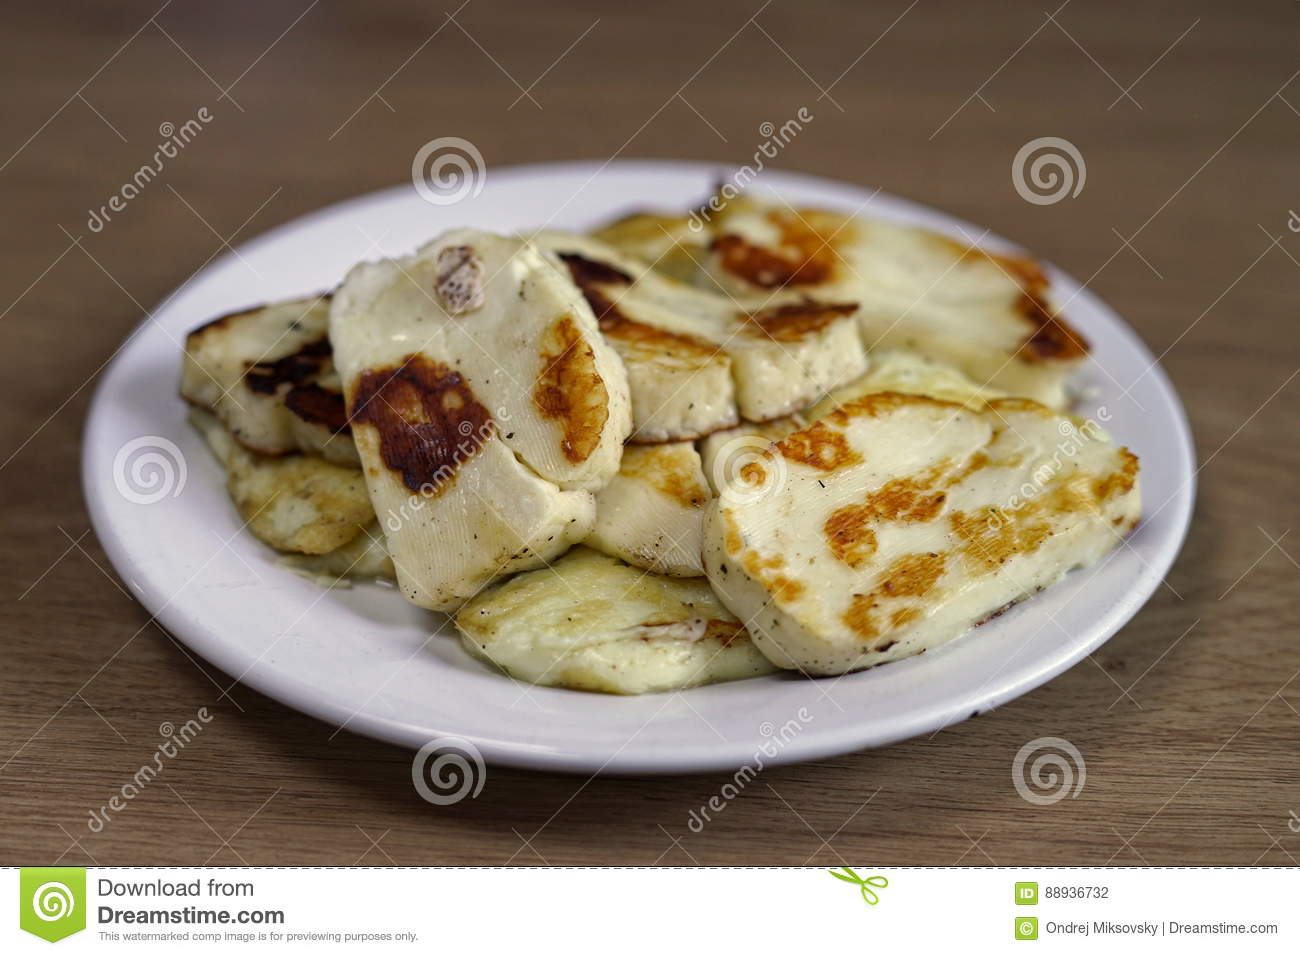 how to make halloumi cheese less salty